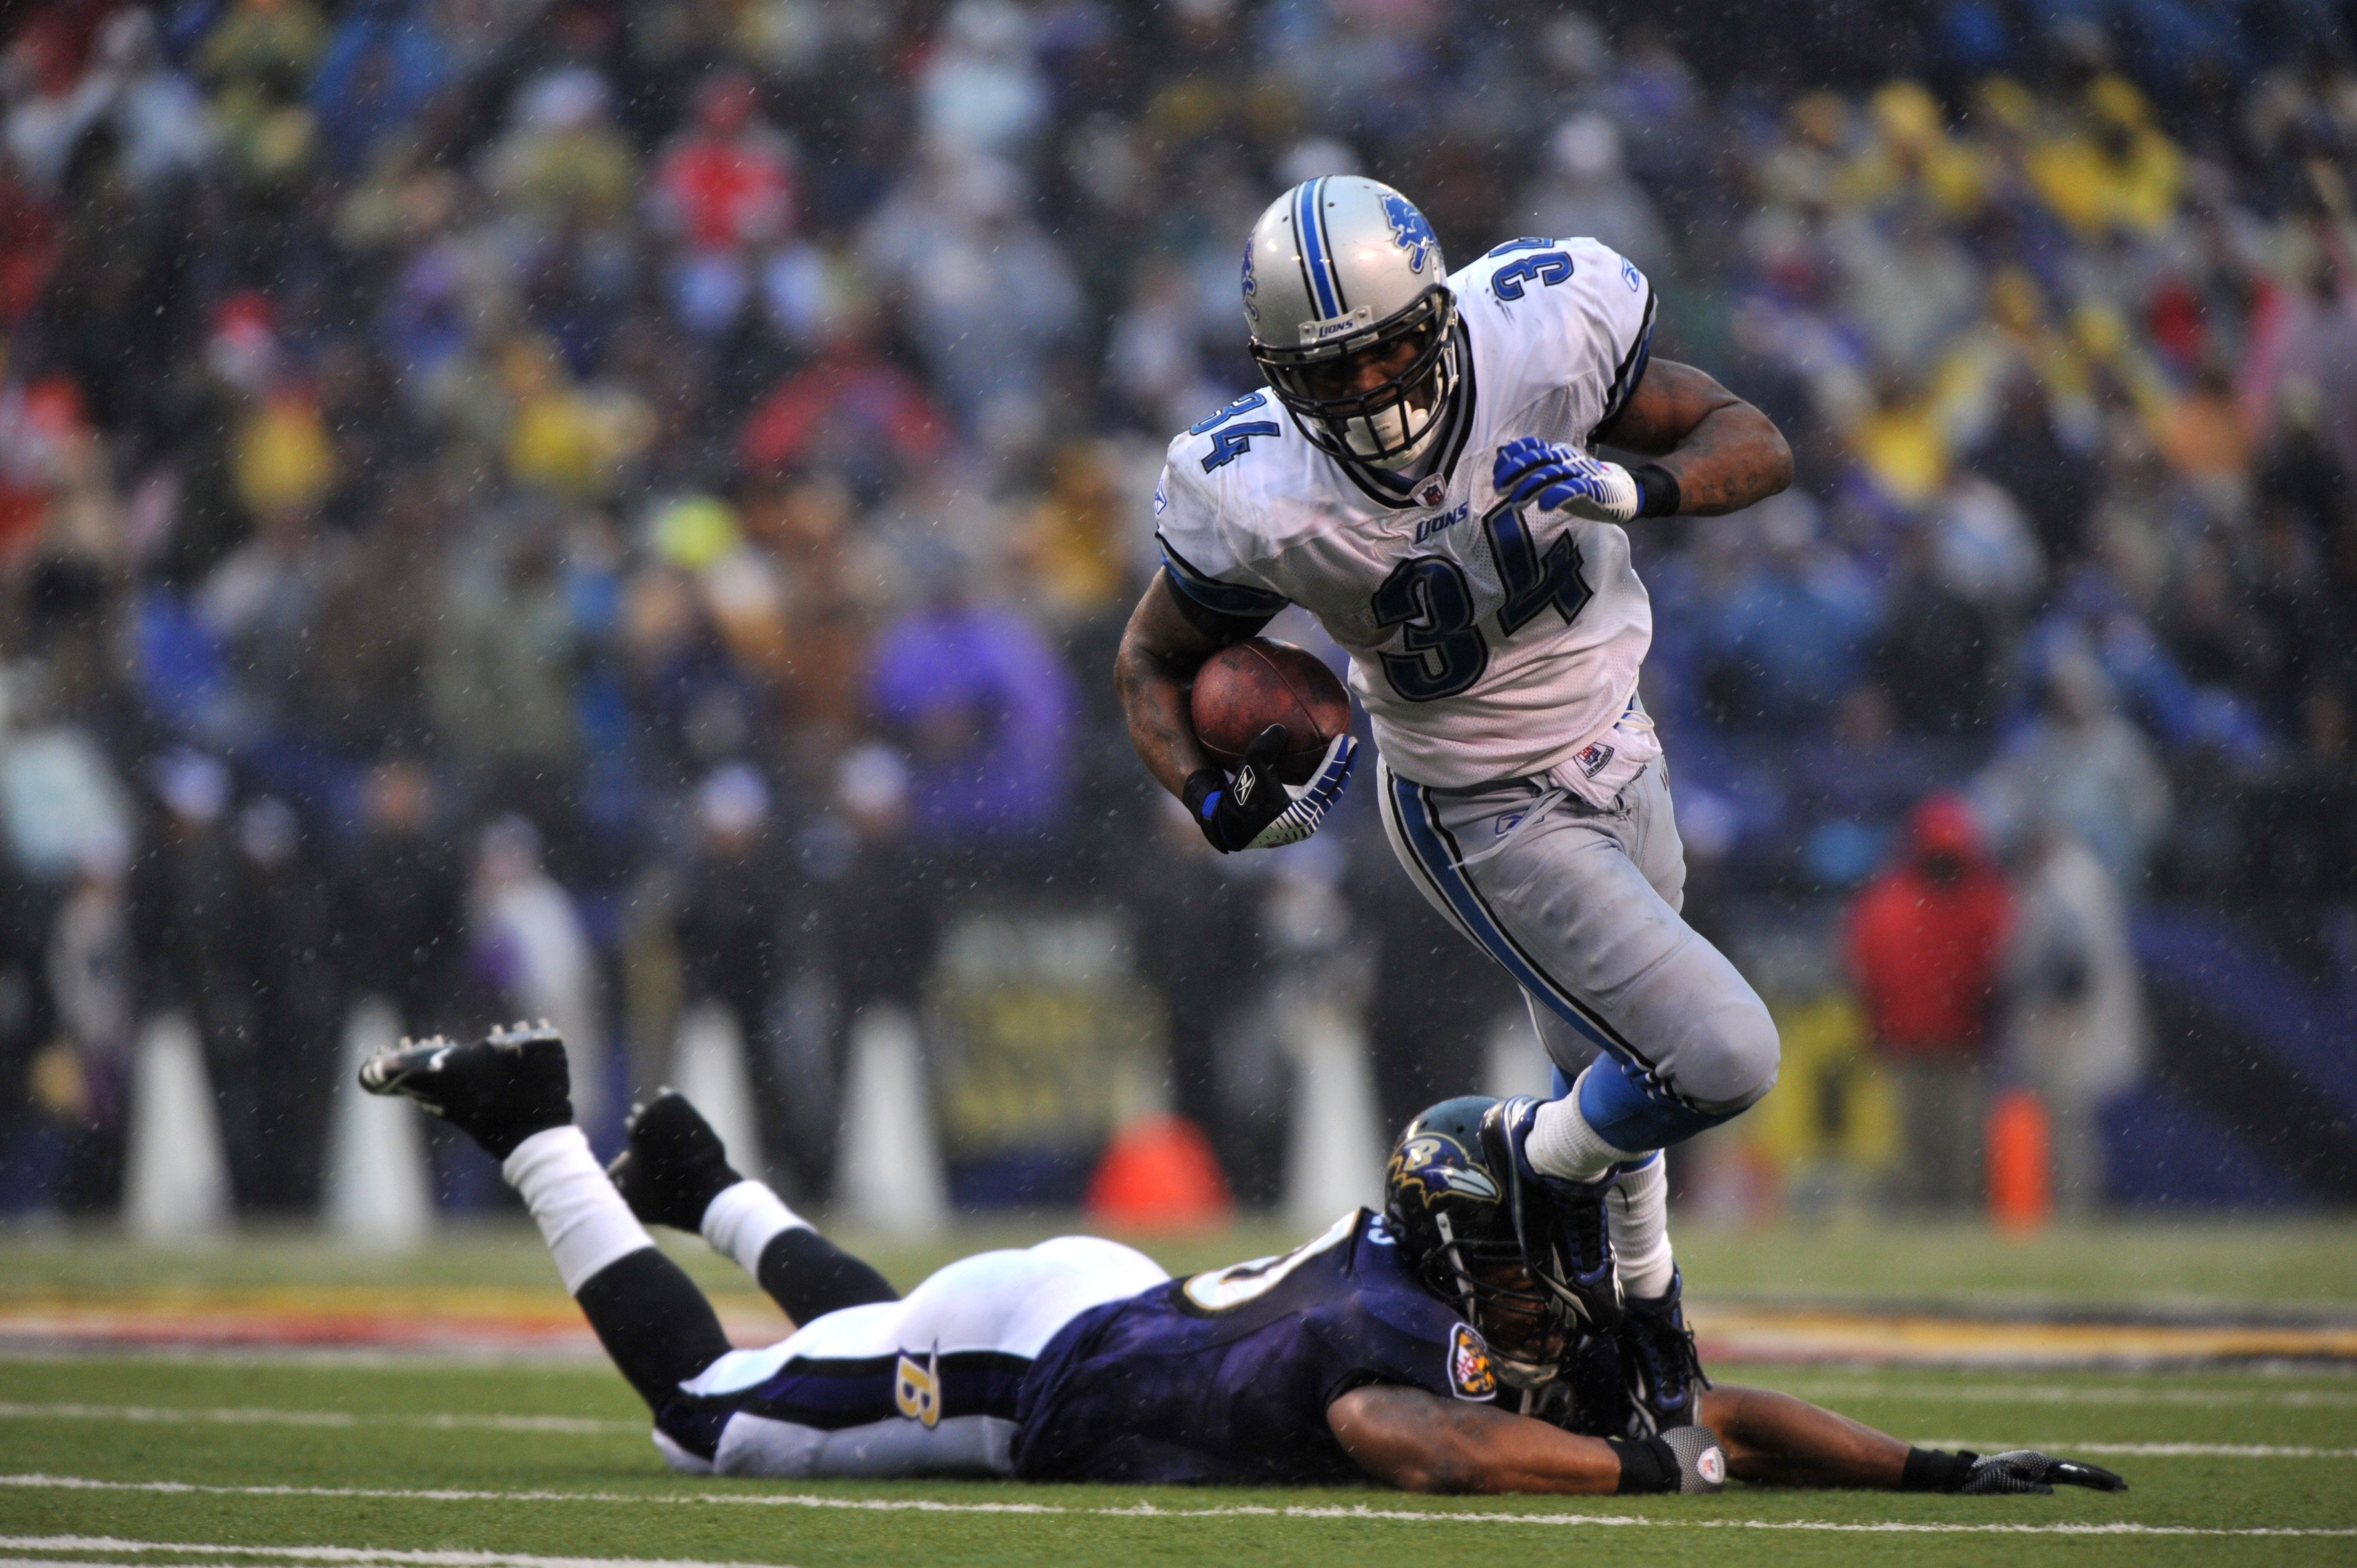 BALTIMORE - DECEMBER 13:  Kevin Smith #34 of the Detroit Lions runs the ball against the Baltimore Ravens at M&T Bank Stadium on December 13, 2009 in Baltimore, Maryland. The Ravens defeated the Lions 48-3. (Photo by Larry French/Getty Images)